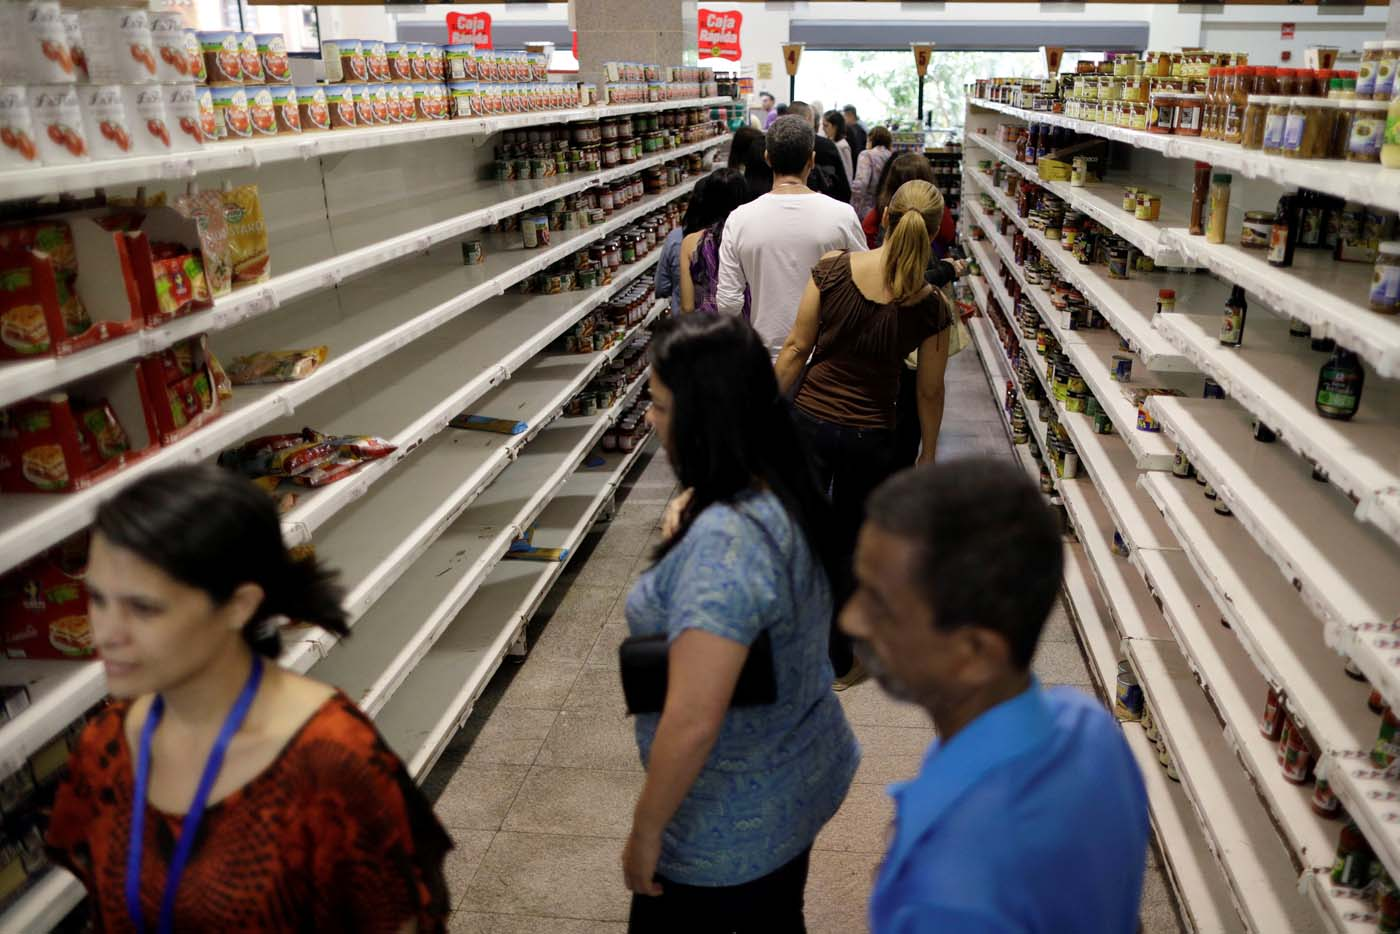 People buy food and other staple goods inside a supermarket in Caracas, Venezuela, July 25, 2017. REUTERS/Ueslei Marcelino